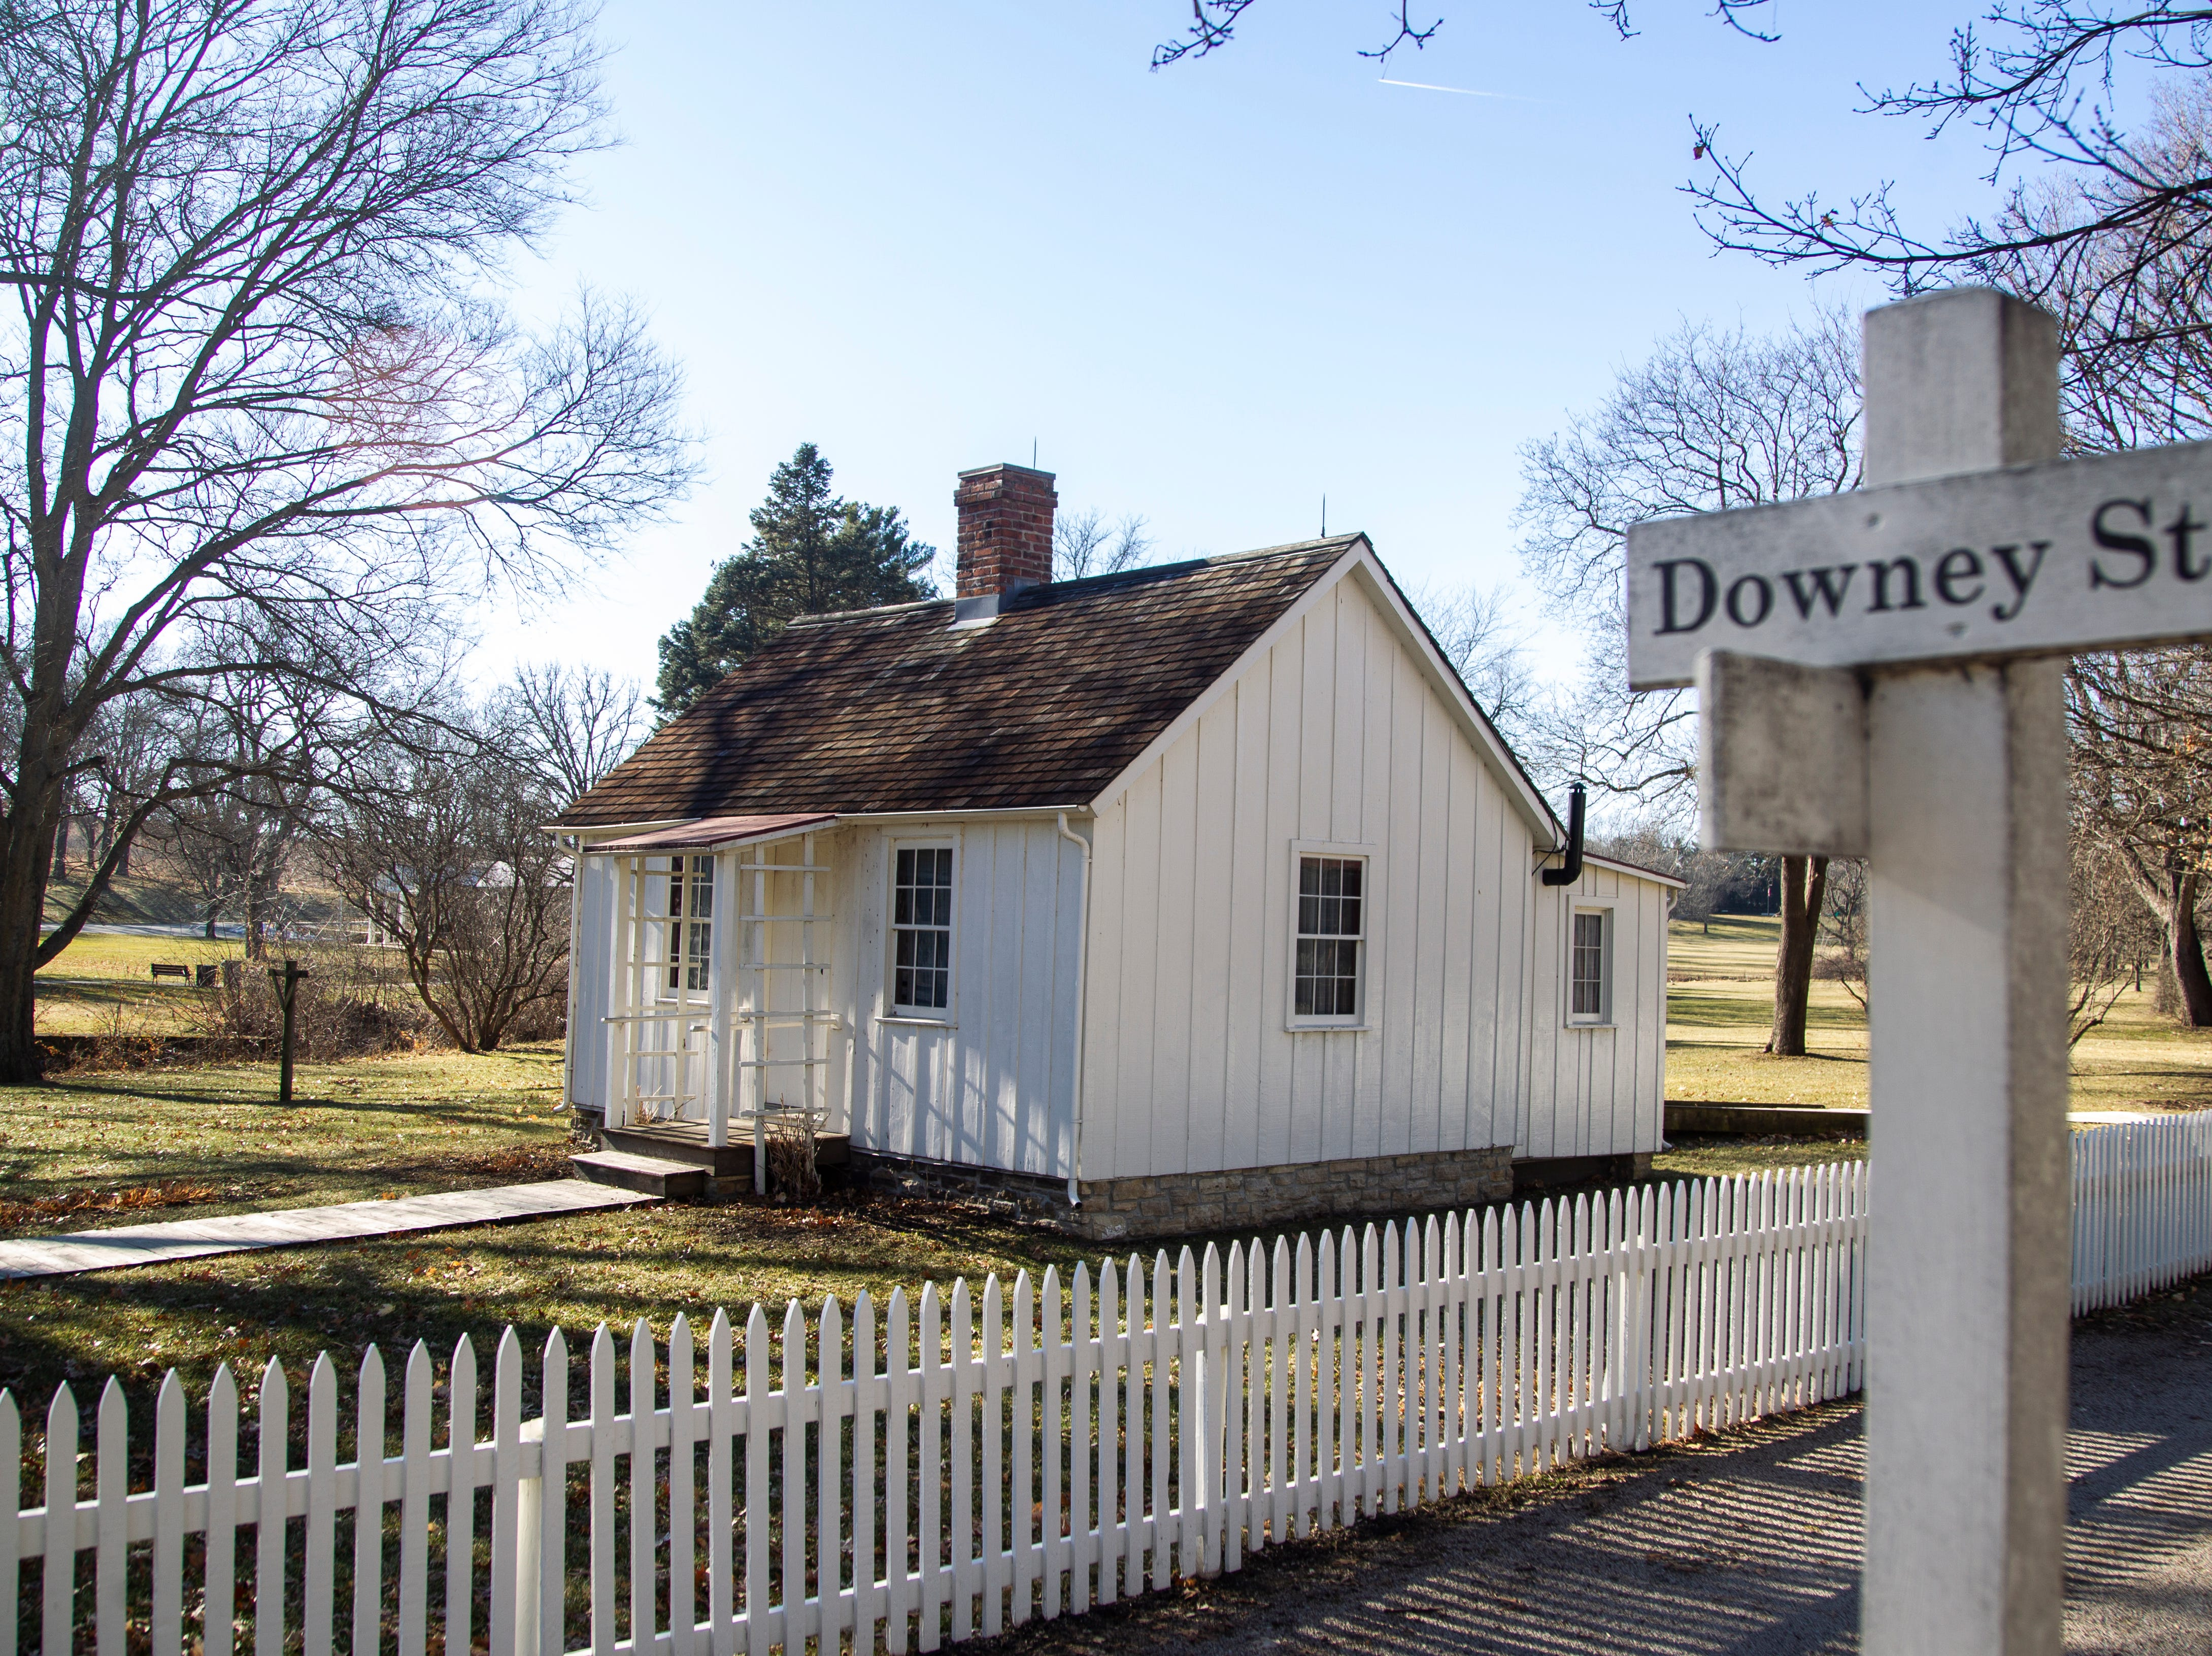 Herbert Hoover's childhood home is seen on Thursday, Jan. 3, 2019, at the Herbert Hoover National Historic Site in West Branch, Iowa.